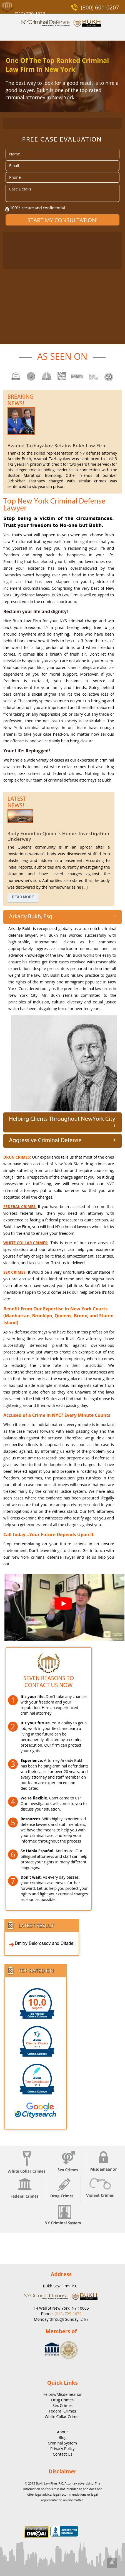 Bukh & Assoc. Law Offices - New York NY Lawyers